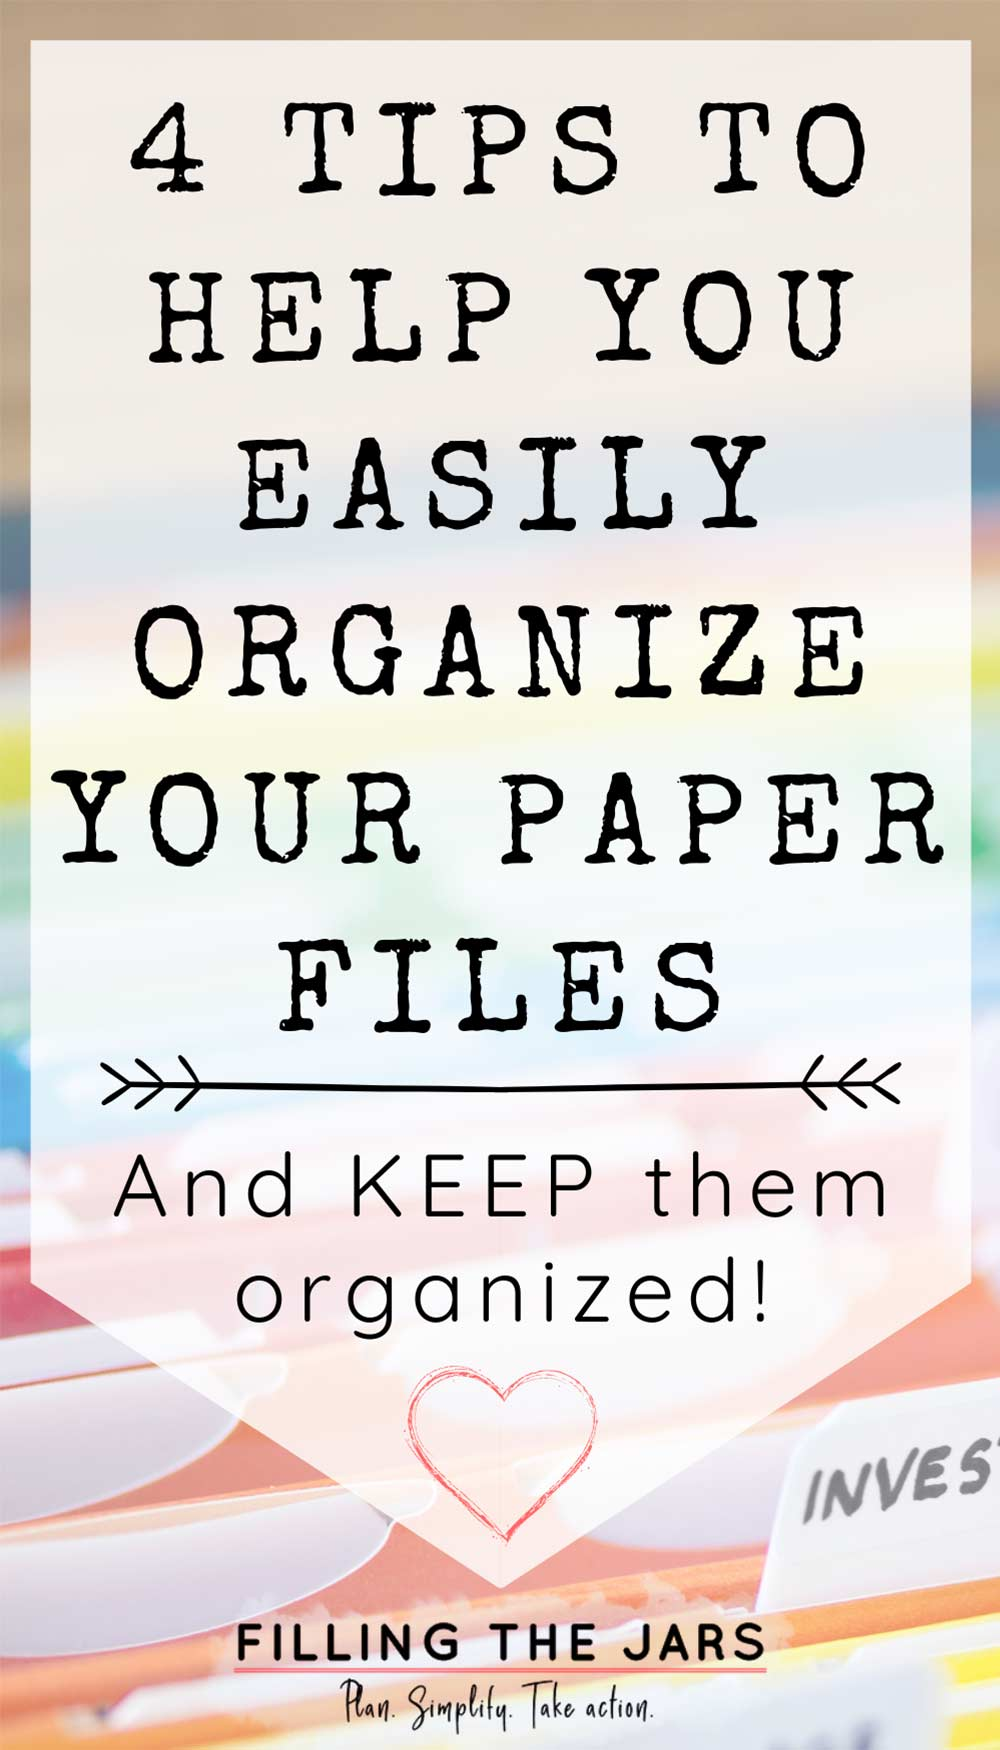 Text tips for best way to organize paper files on white background over image of colorful organized household files.